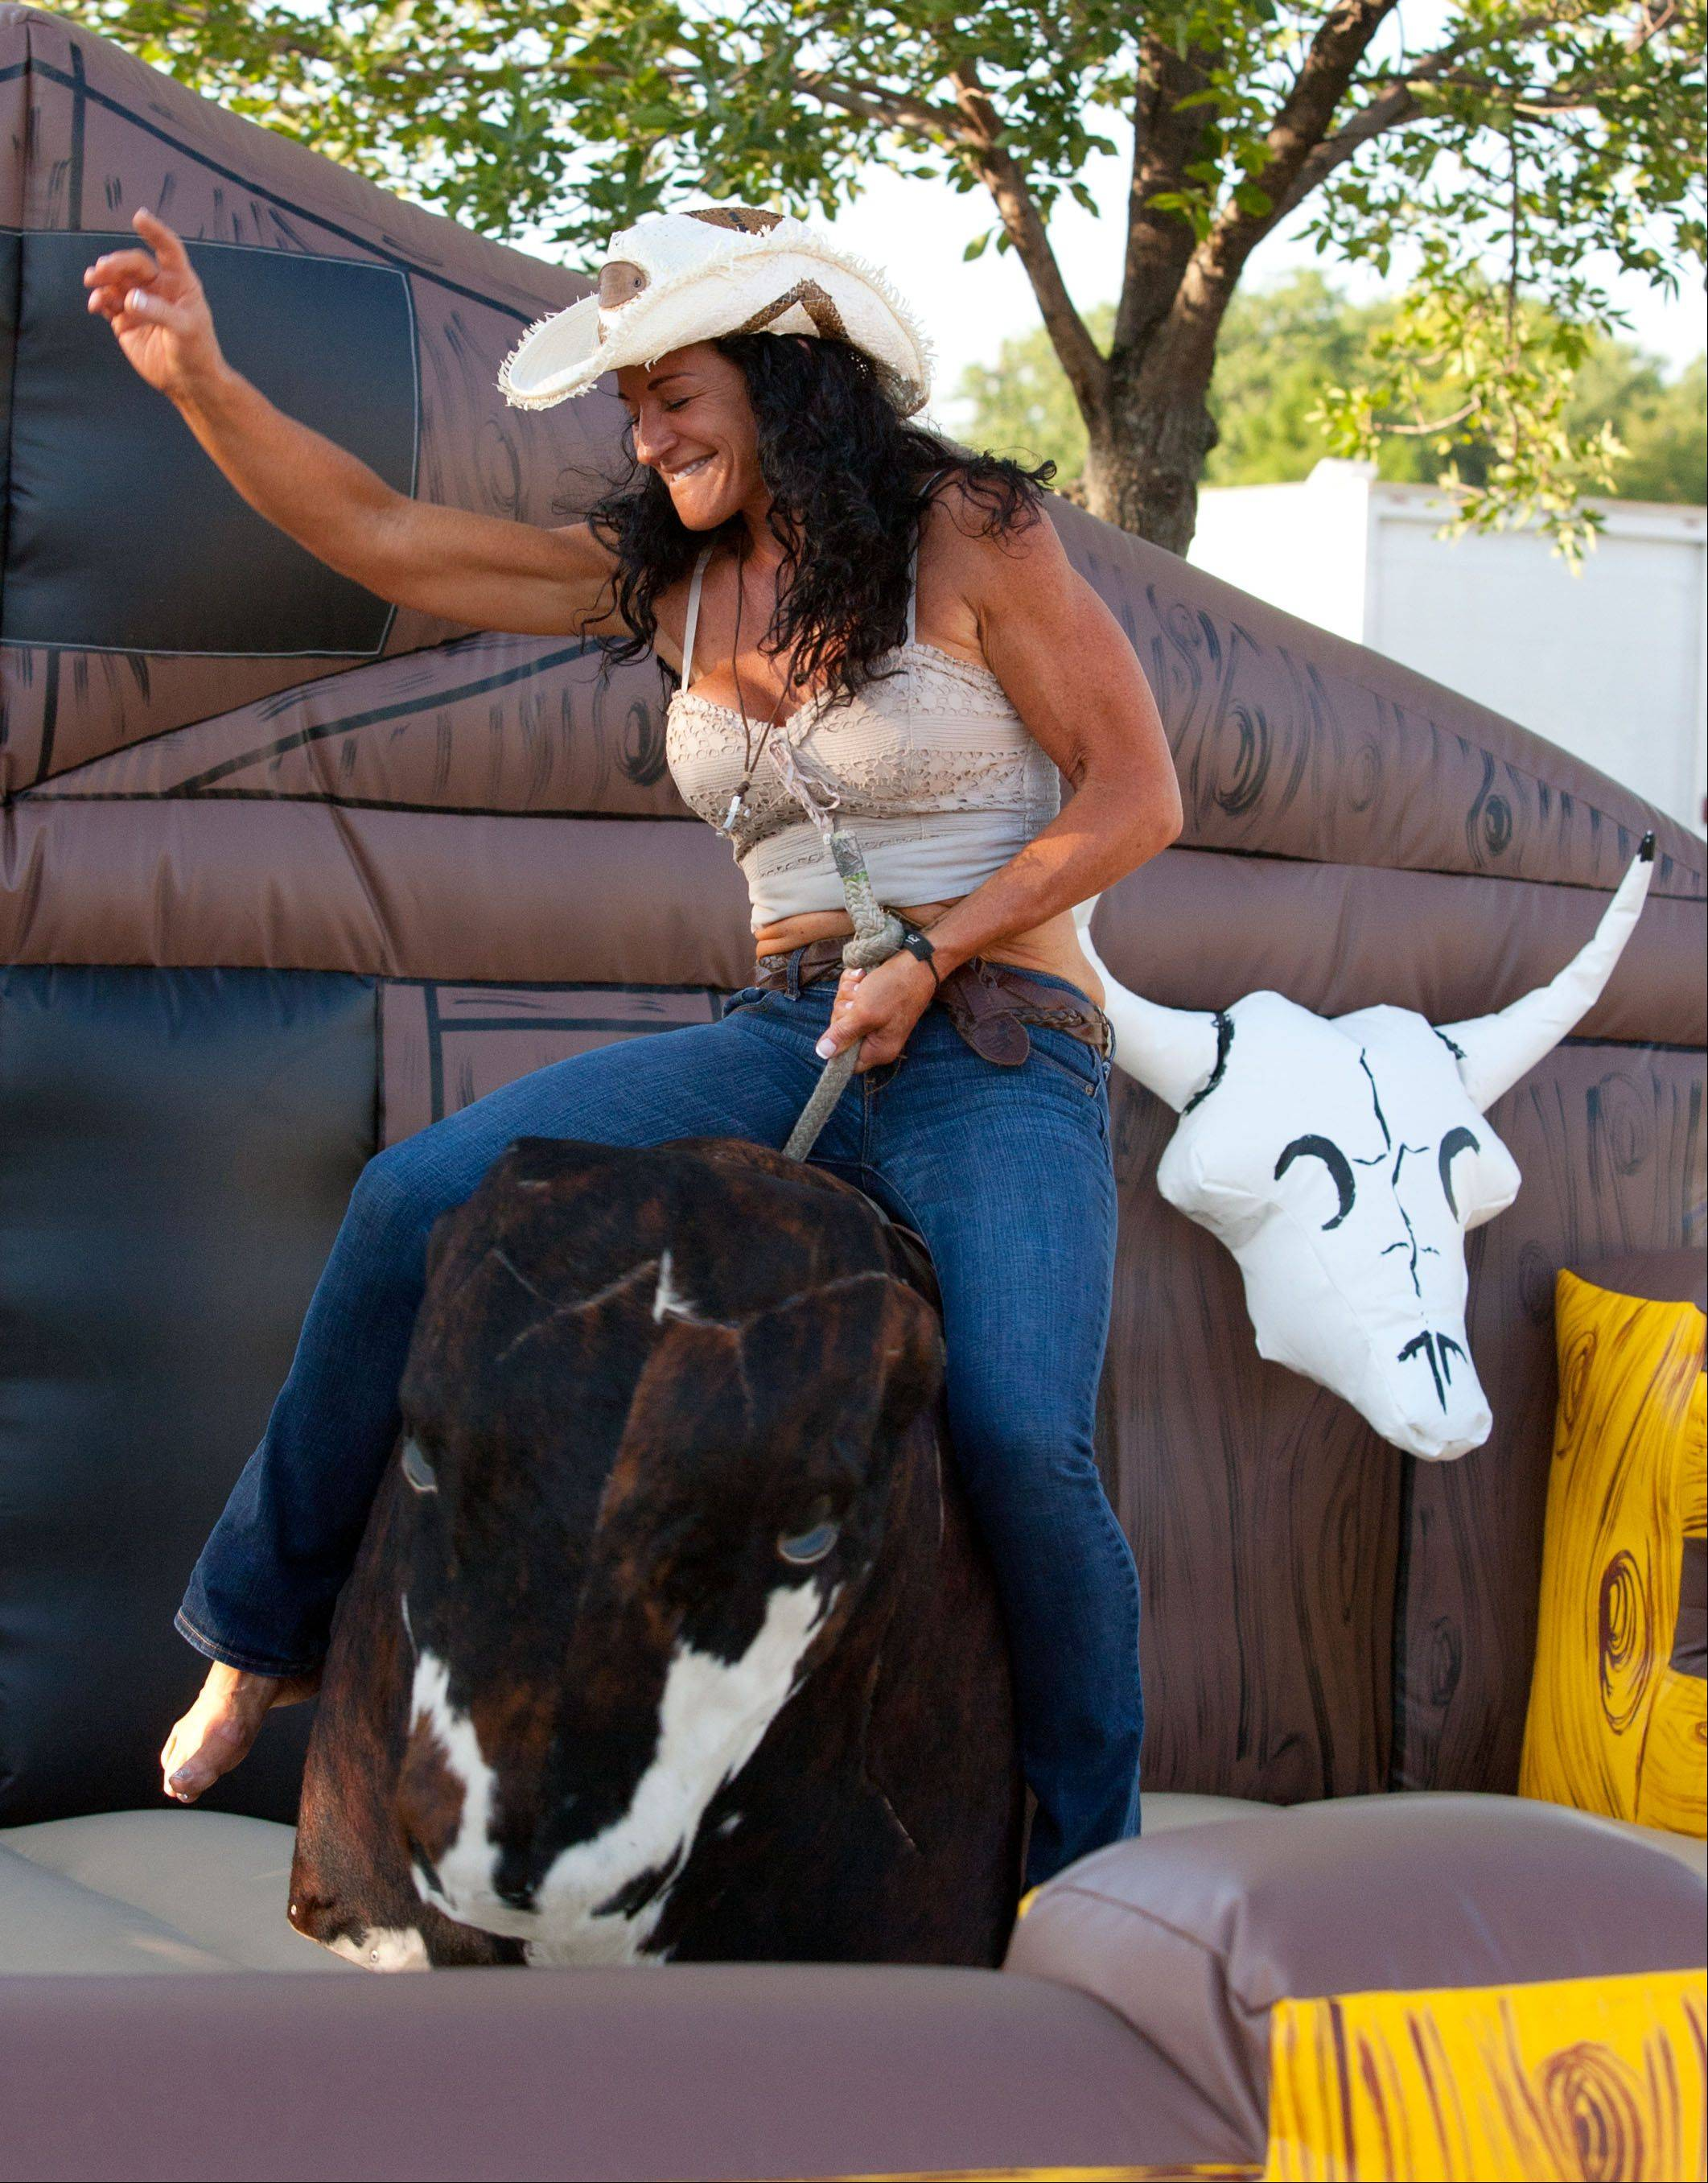 Karen Foresta of Addison rides the mechanical bull during country night at Glendale Heights Fest, in Camera Park.